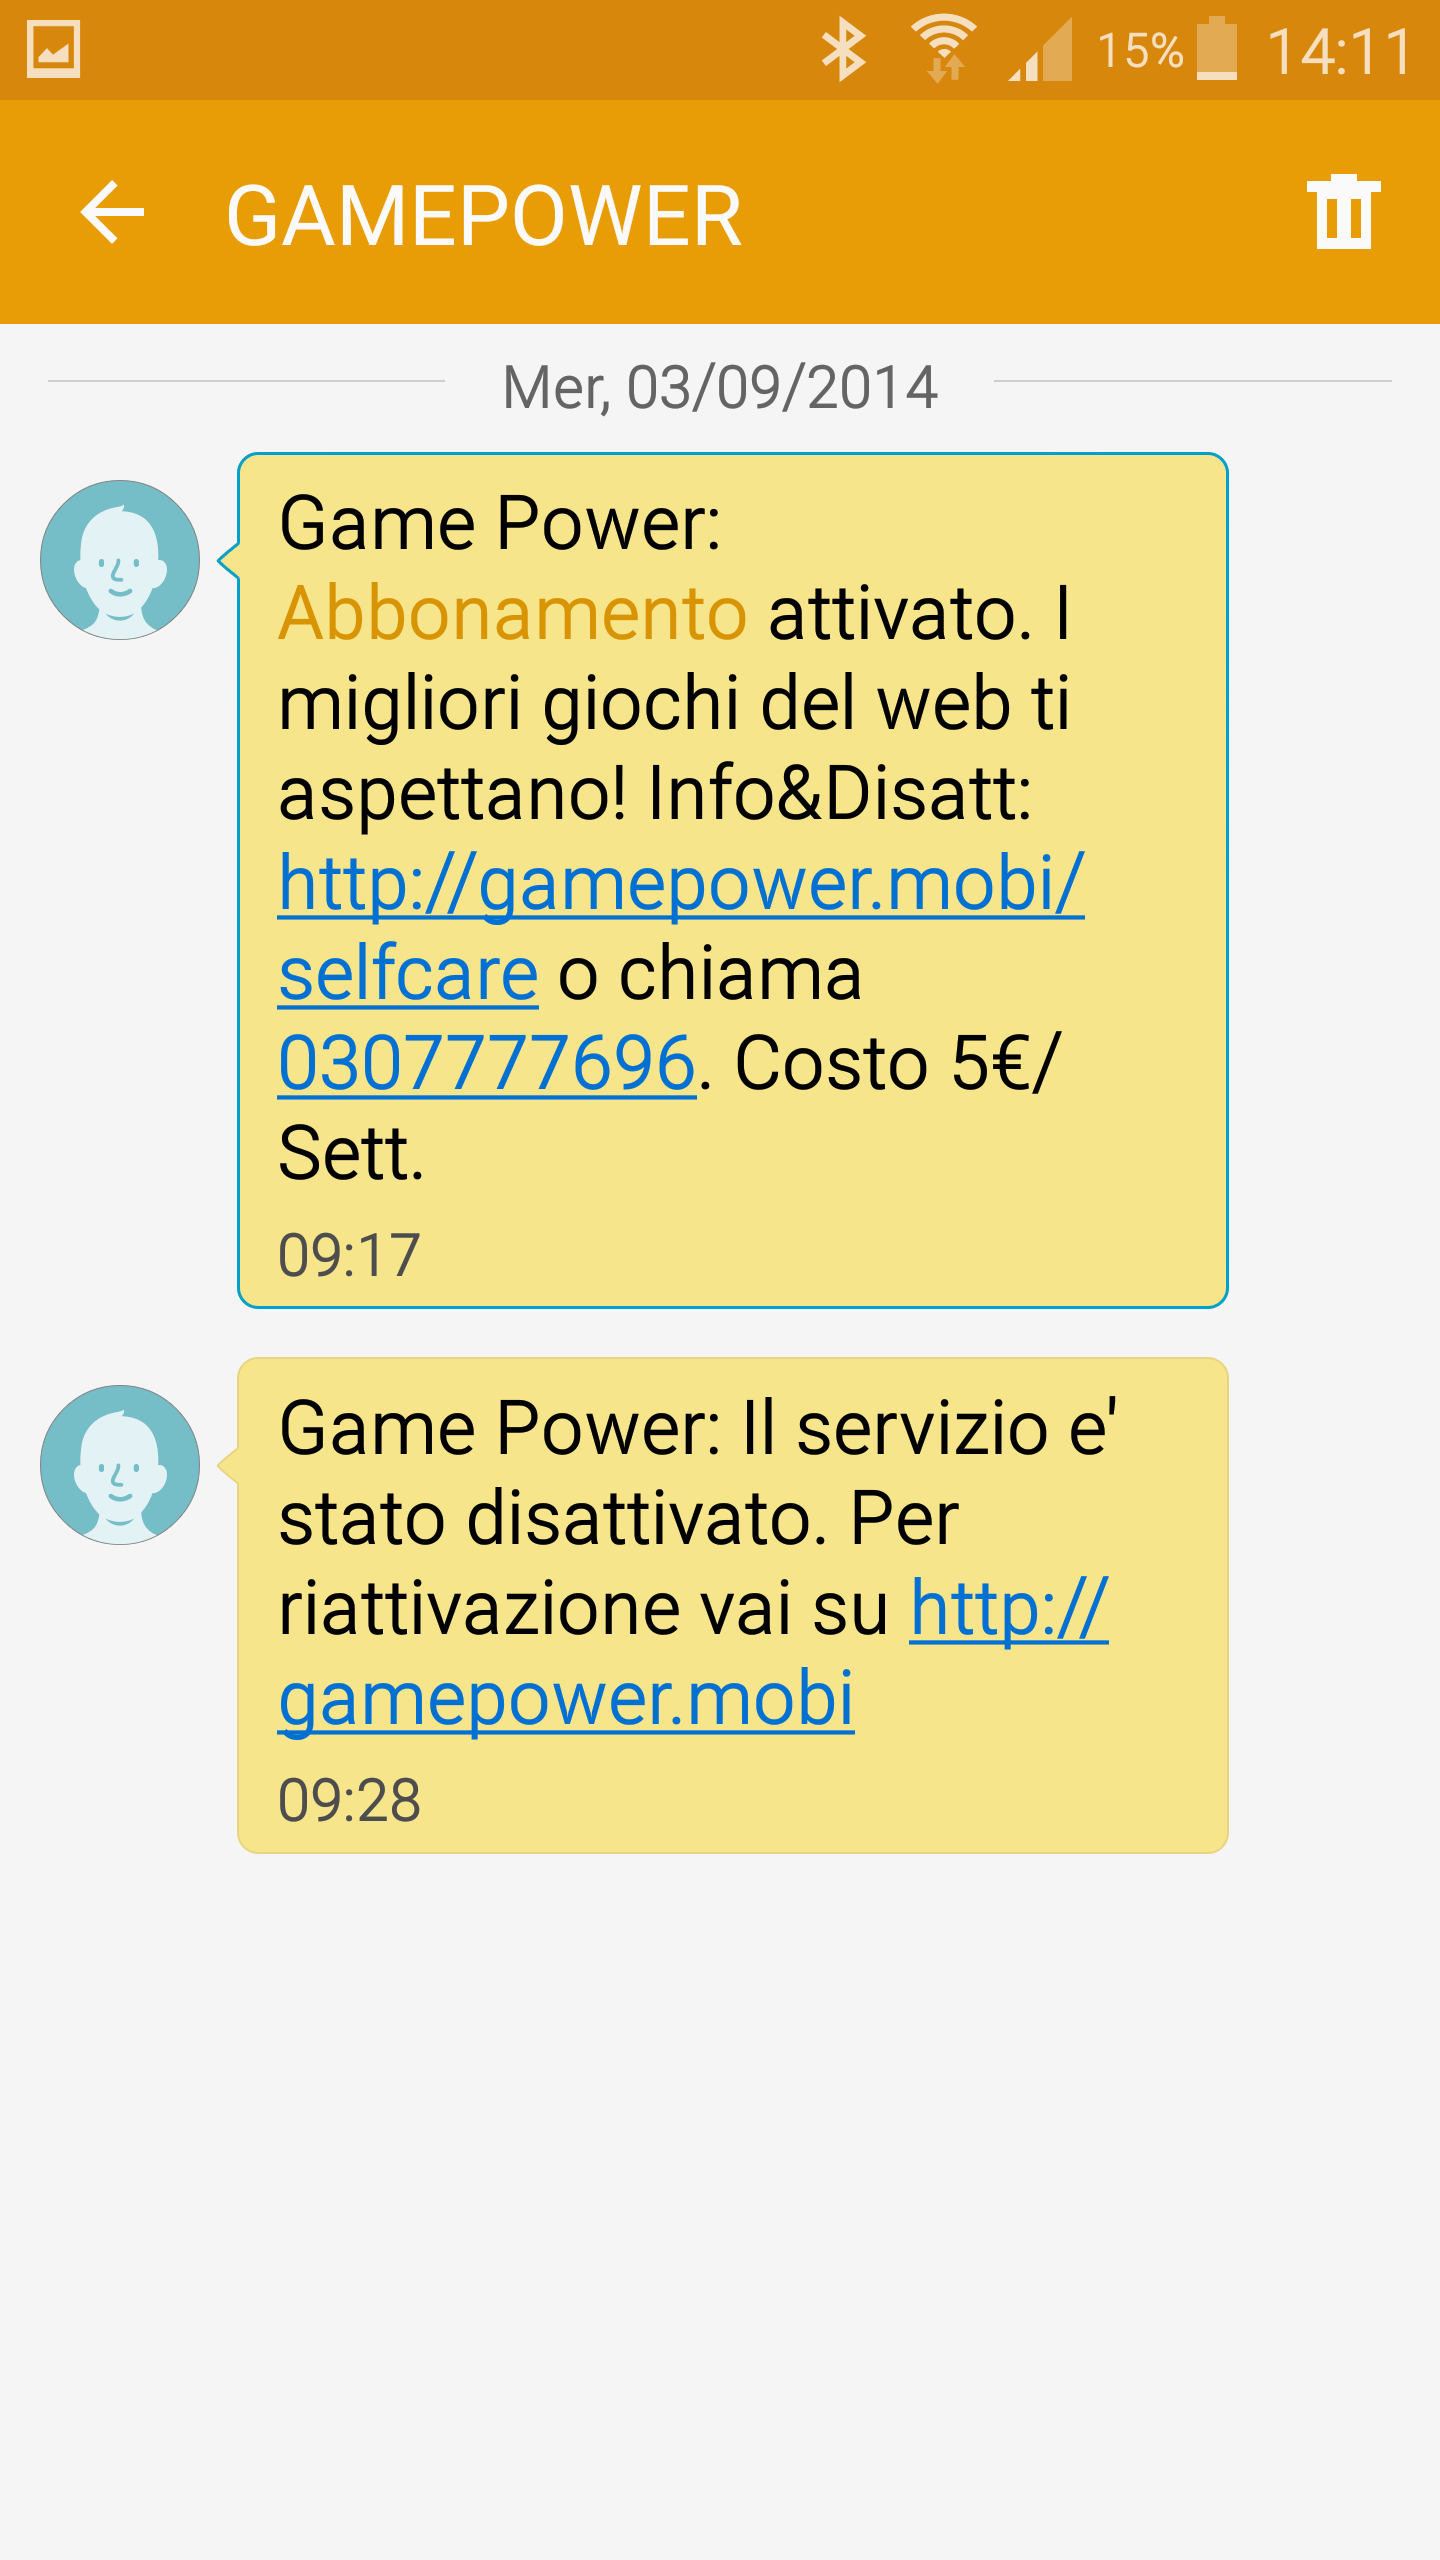 GAMEPOWER, h3g three Italy unrequested subscription, 03/09/2014